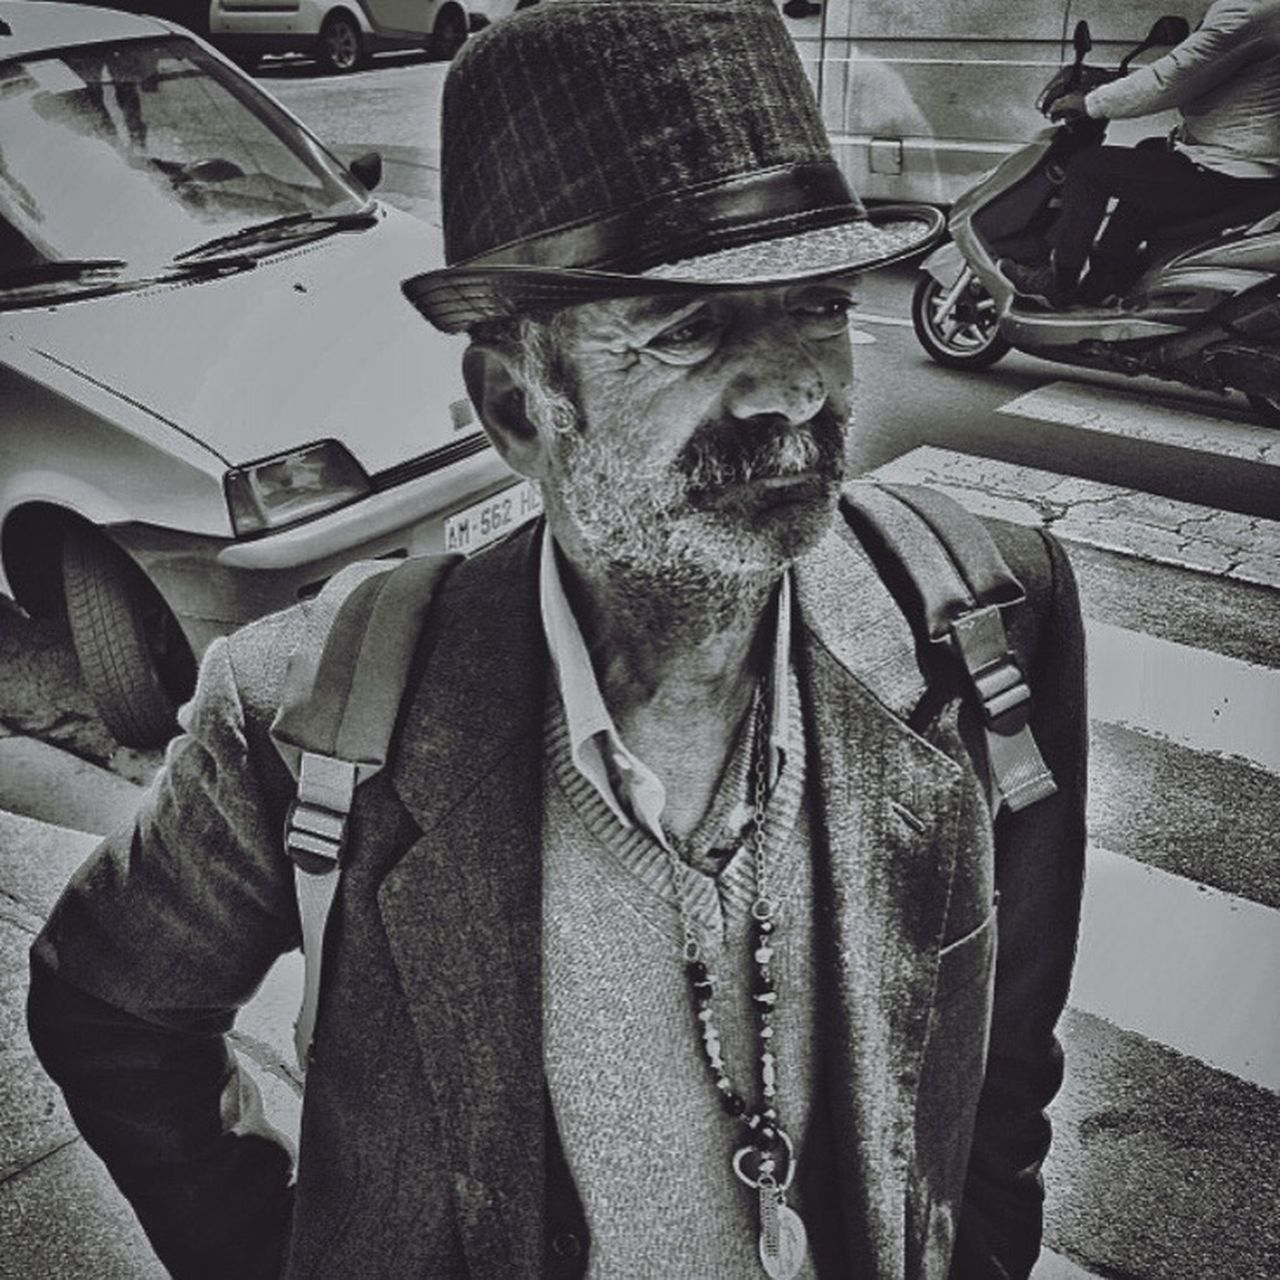 Untold Stories People Peoplephotography Streetphotography Streetphoto_bw Sardegna Cagliari Urban City Eye4photography